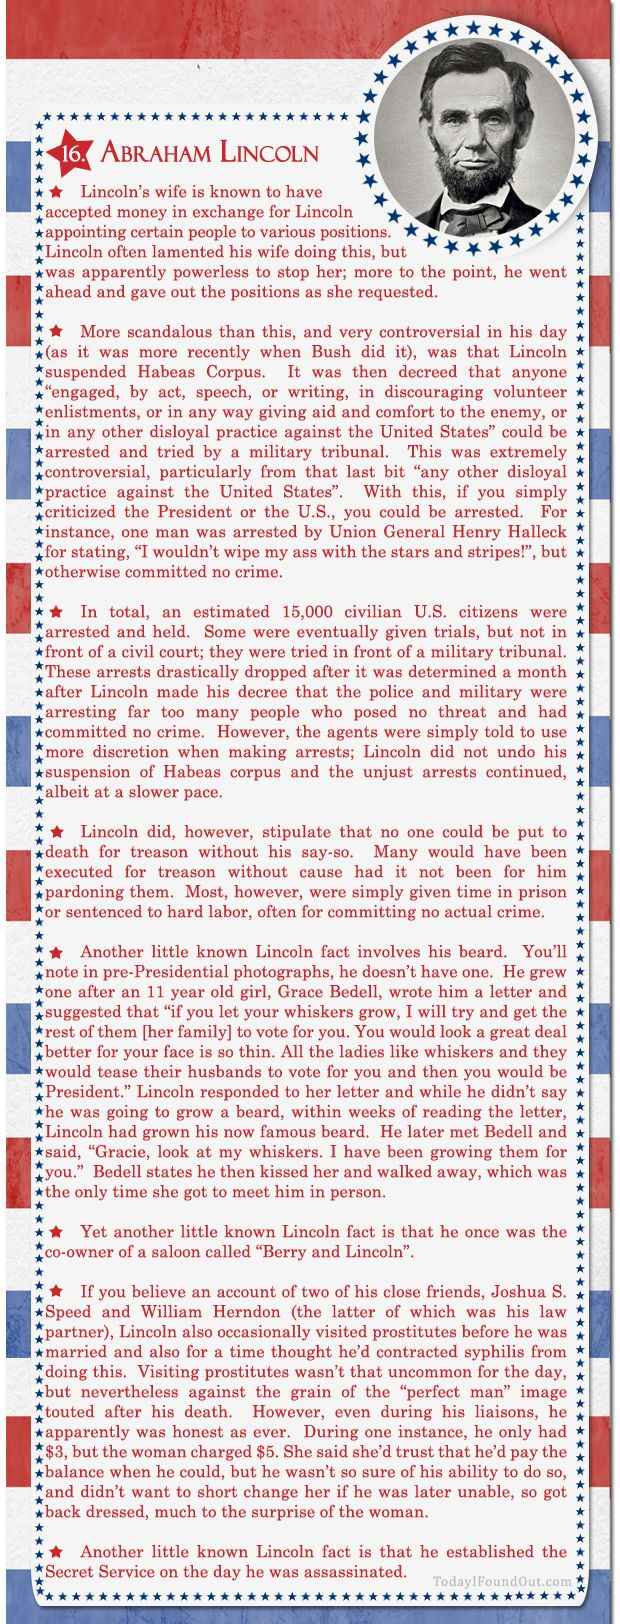 100+ Facts About US Presidents 16- Abraham Lincoln